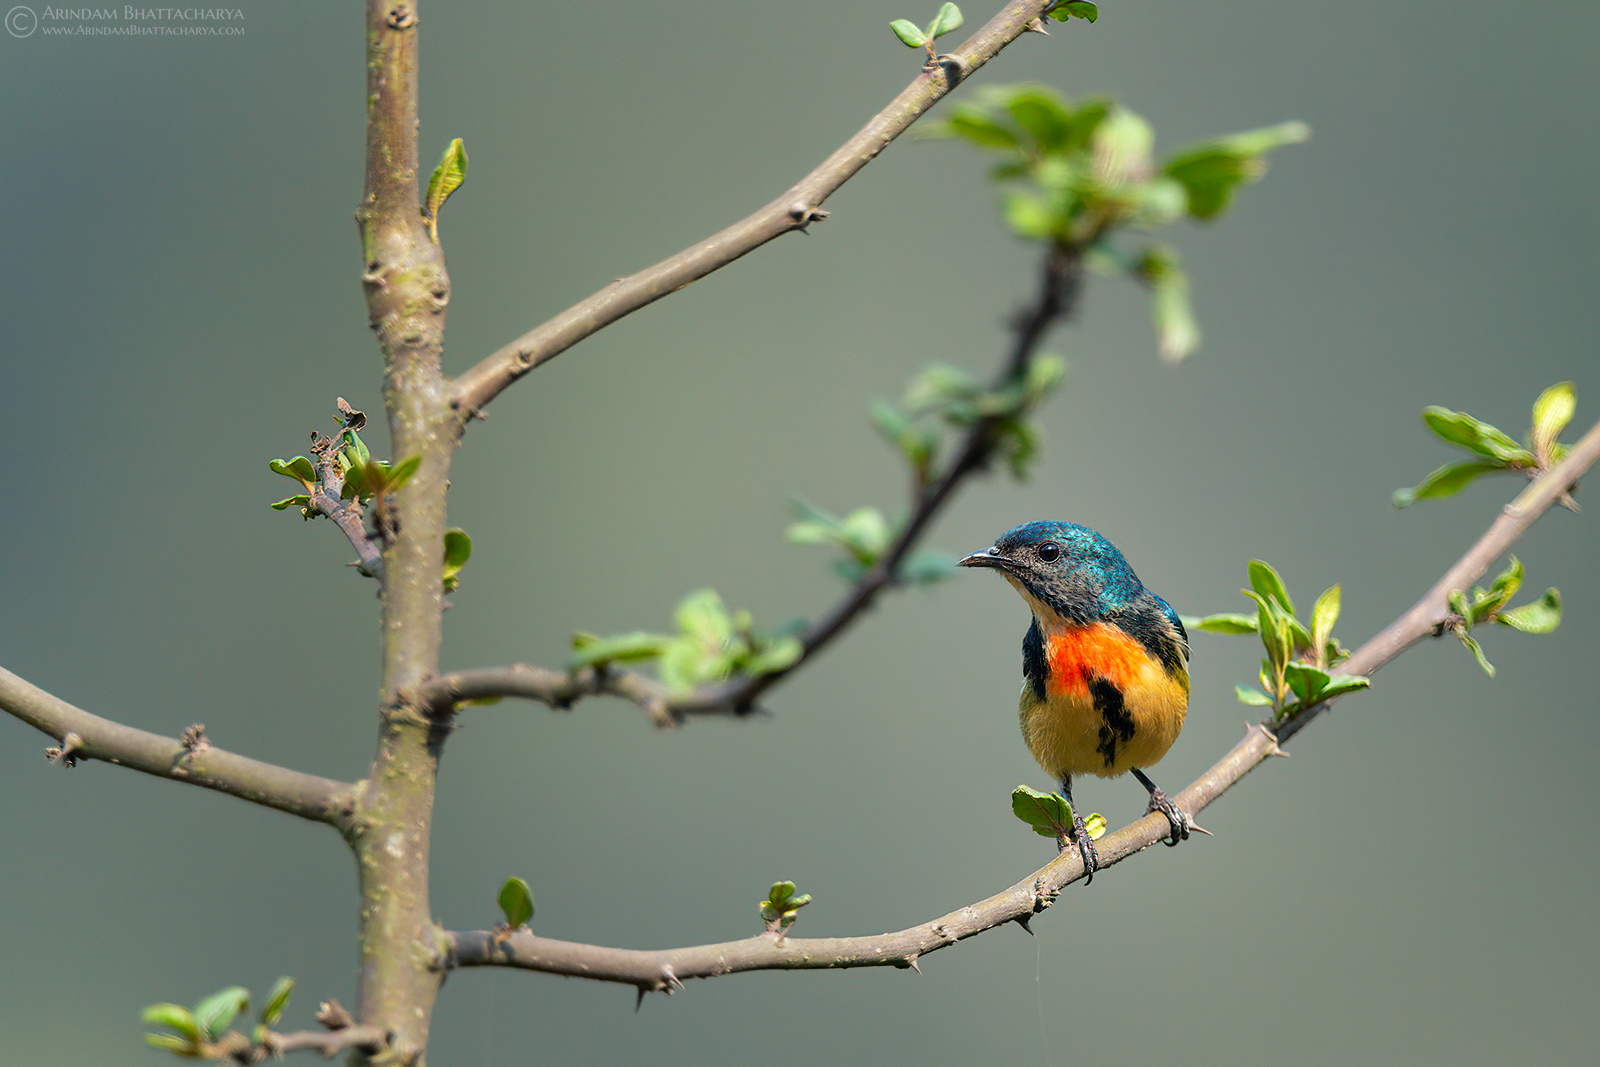 fire breasted flowerpecker in north bengal hills west bengal by arindam Bhattacharya photography